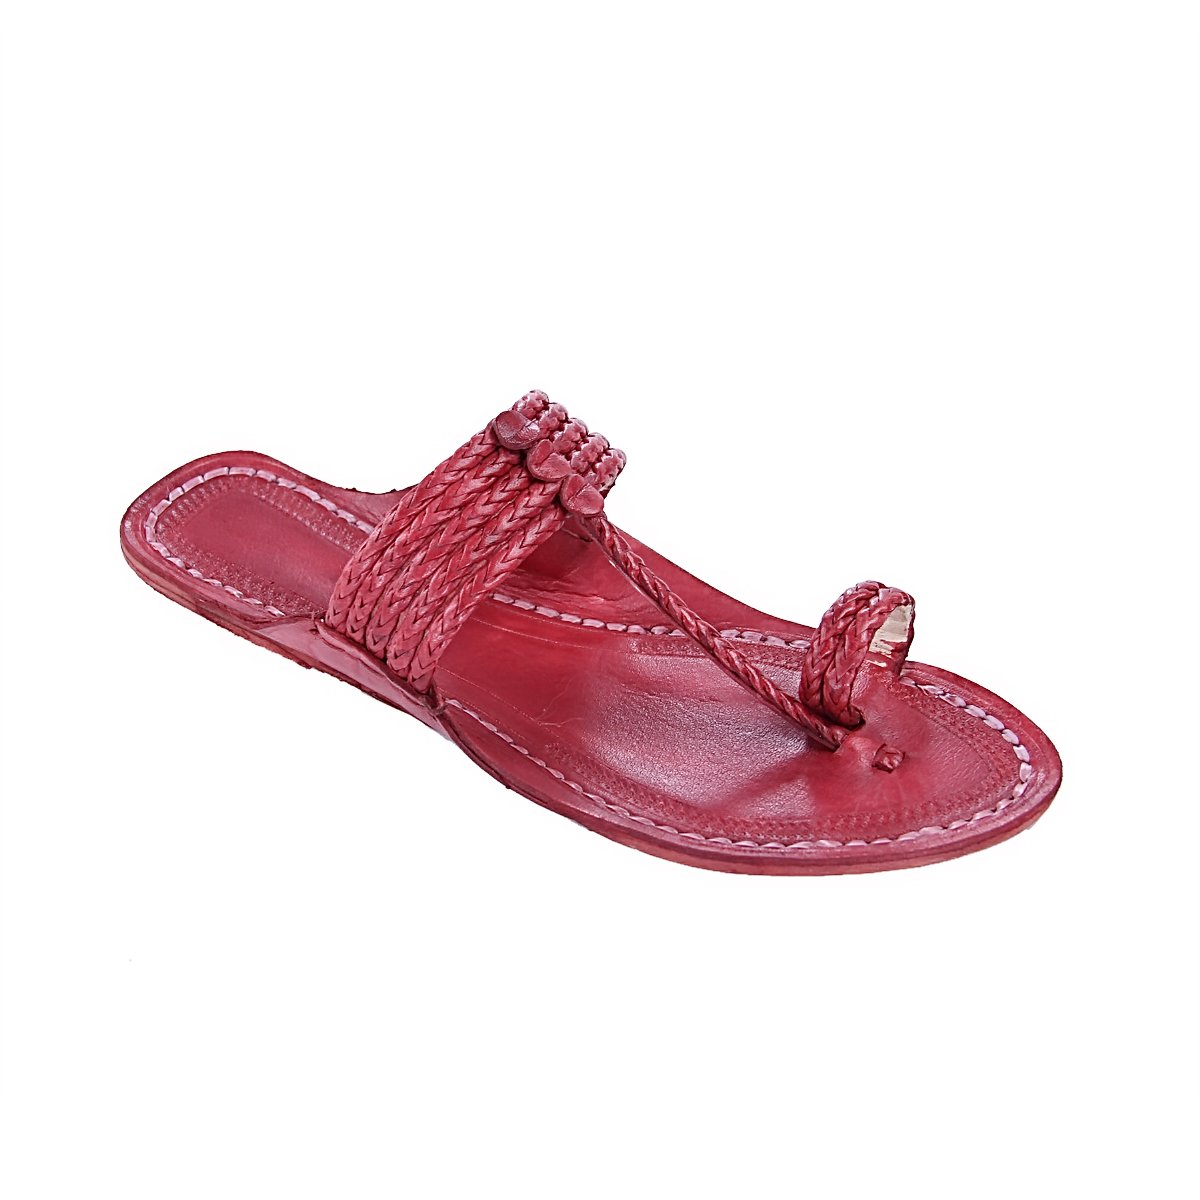 fa0893dec405d7 original kolhapuri chappal Remarkable cherry red five braids braids braids  kolhapuri men chappal slipper sandal B0784K6SW1 Sandals 19cdf1